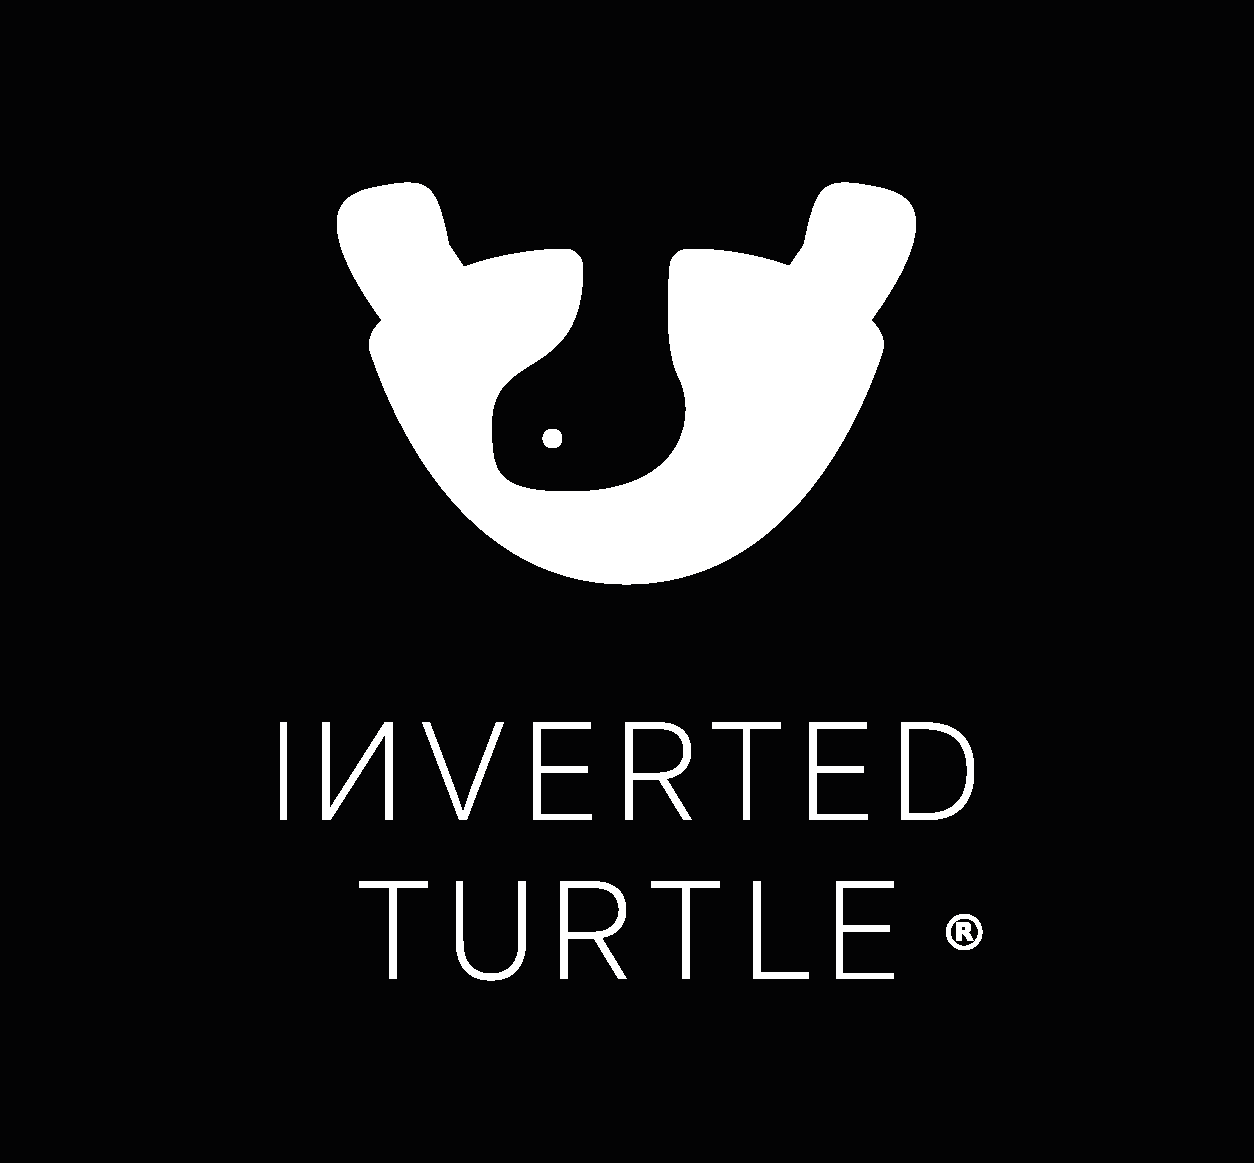 Inverted Turtle